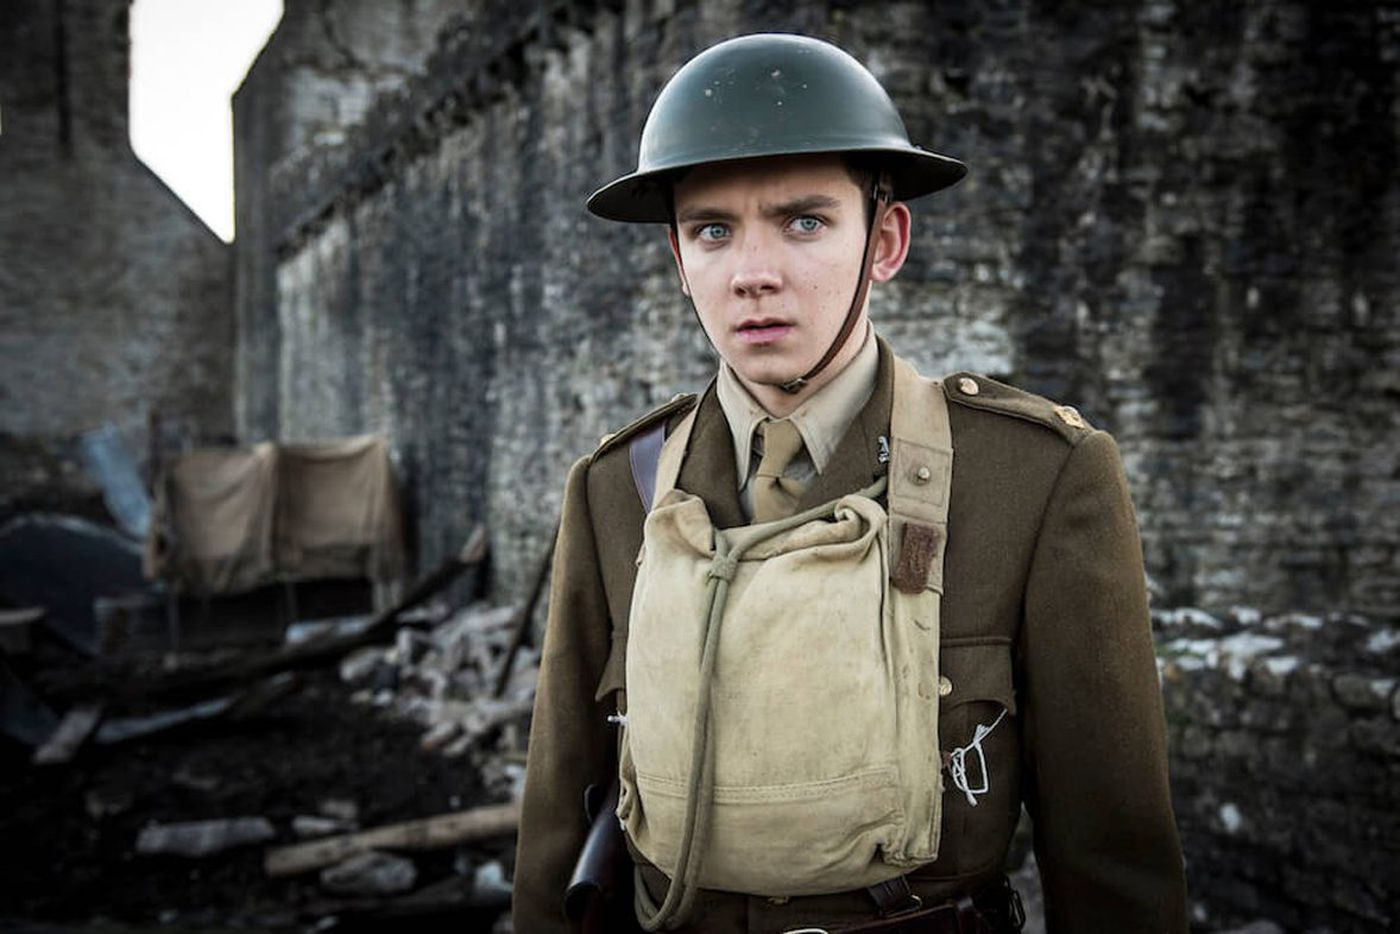 'Journey's End': In the trenches with WWI soldiers